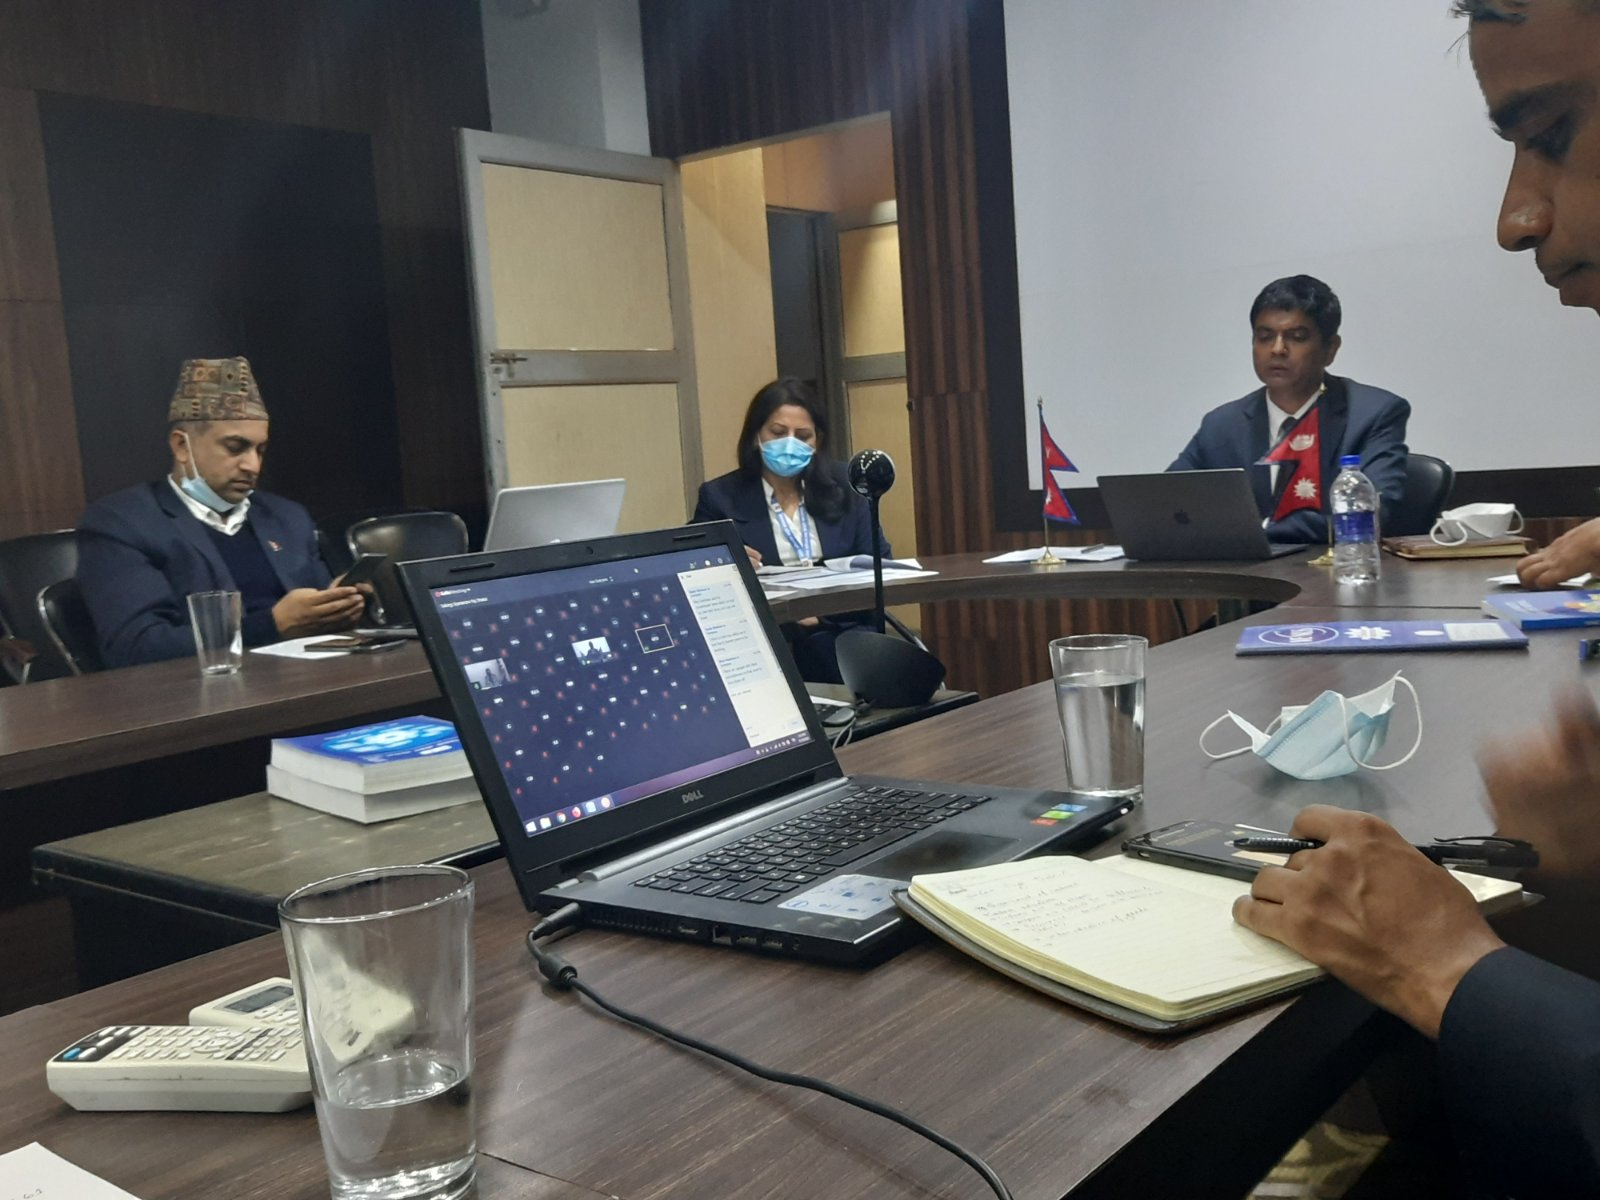 Joint secretary Mr. Prakash Dahal and his team participated in an Intersessonal Meeting (Video Conference) held on November 10, 2020 for the preparation of TIFA Council Meeting between Nepal and  USA.